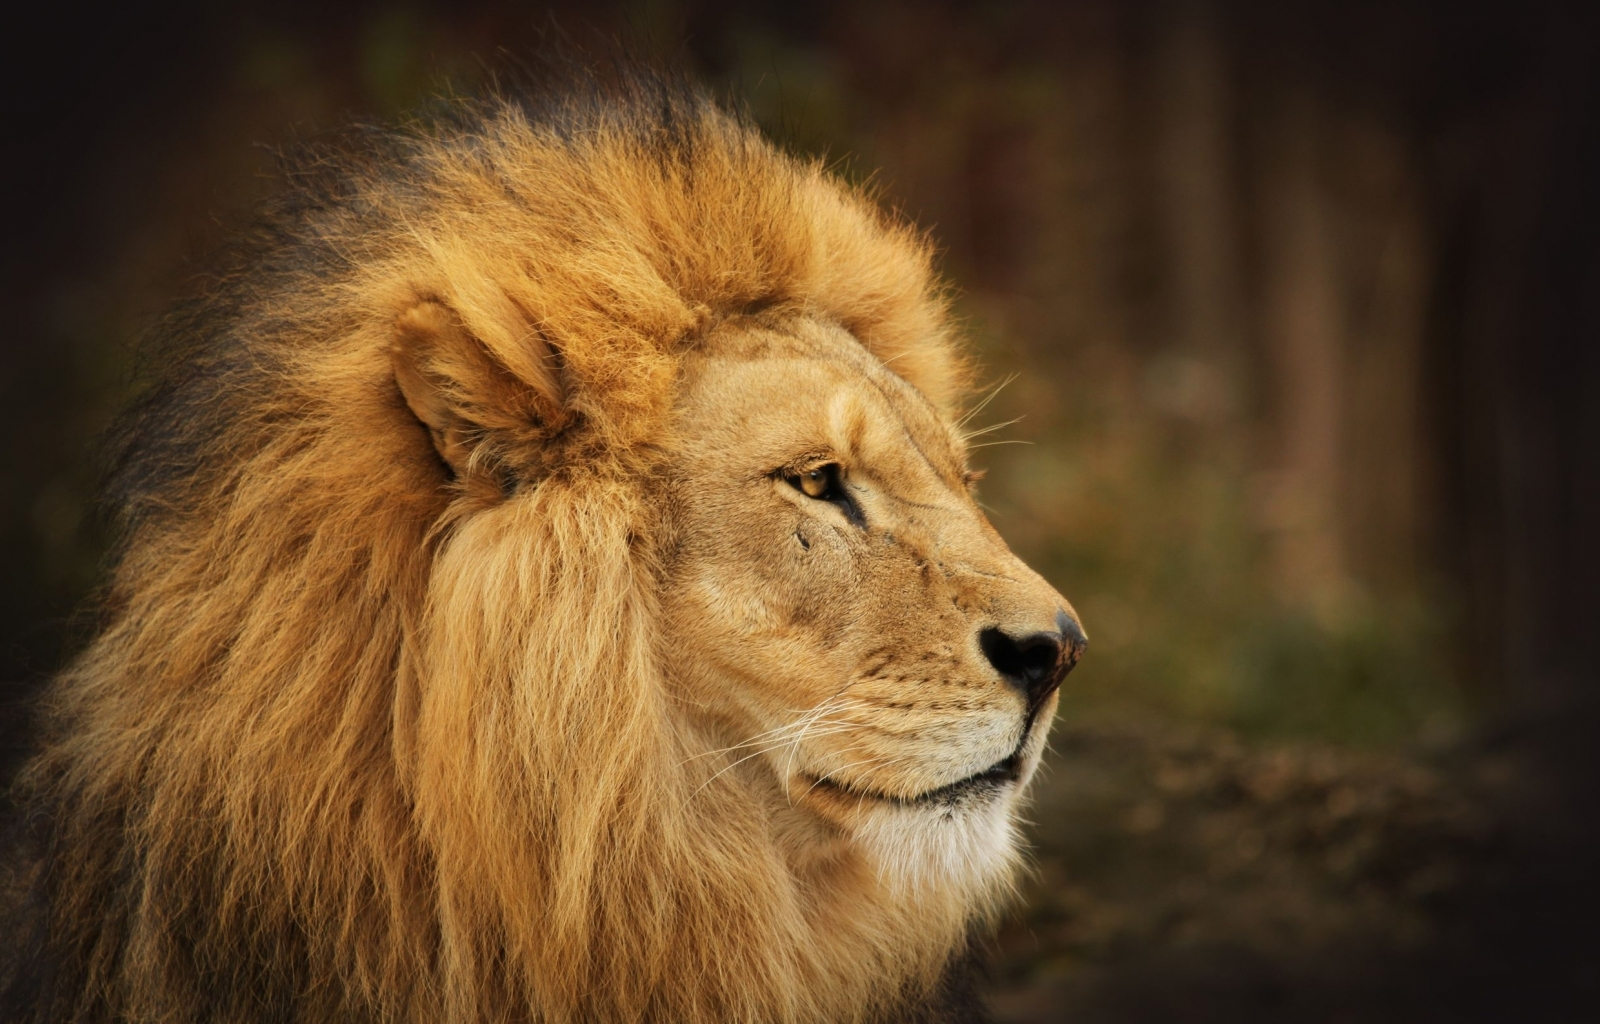 45378 download wallpaper Animals, Lions screensavers and pictures for free